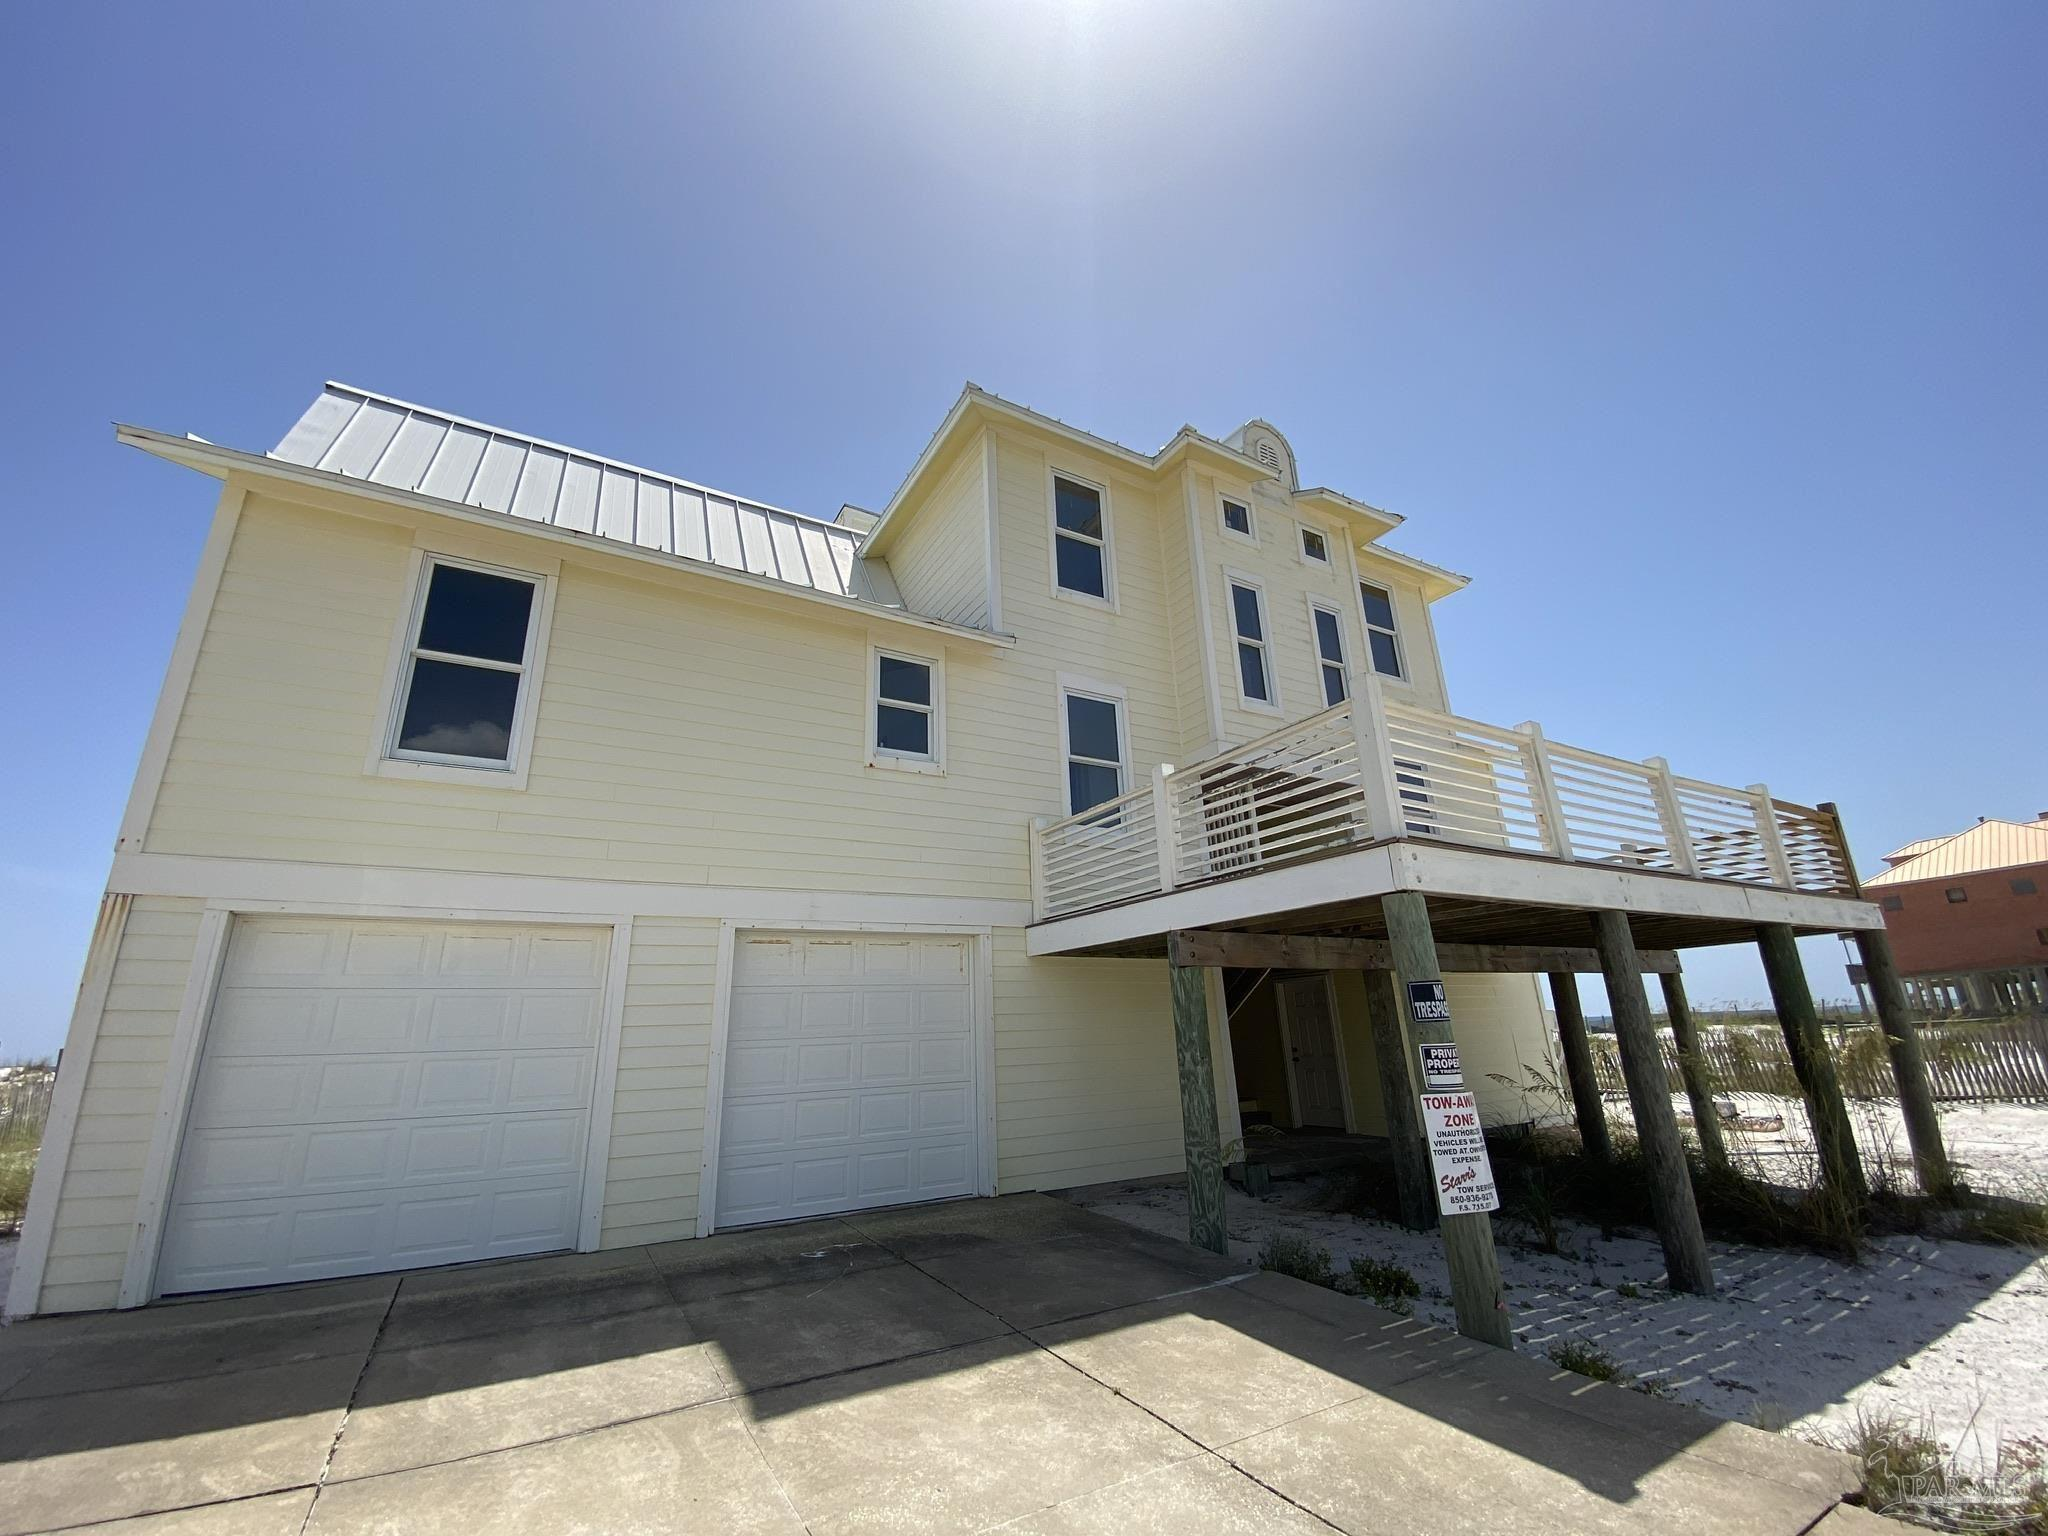 **LOCATION**LOCATION**LOCATION**  Here is your opportunity to own your GULF FRONT primary residence, 2nd Home or Vacation Rental Property.  Only 5 lots from the west end of Navarre Beach this location is one of the very BEST ON THE BEACH!!  With 4 Bedrooms, 3.5 Bathrooms with the most amazing views from every room.  Large decks on both living levels plus covered space on the ground level make this property GREAT FOR FAMILY GATHERINGS, CORPORATE EVENTS OR PARTY / WEDDING VENUE.   Interior is ready for your finishing touches.  Appliances were purchased new and still remain in their boxes.  All items including appliances and renovation materials will convey with the home.